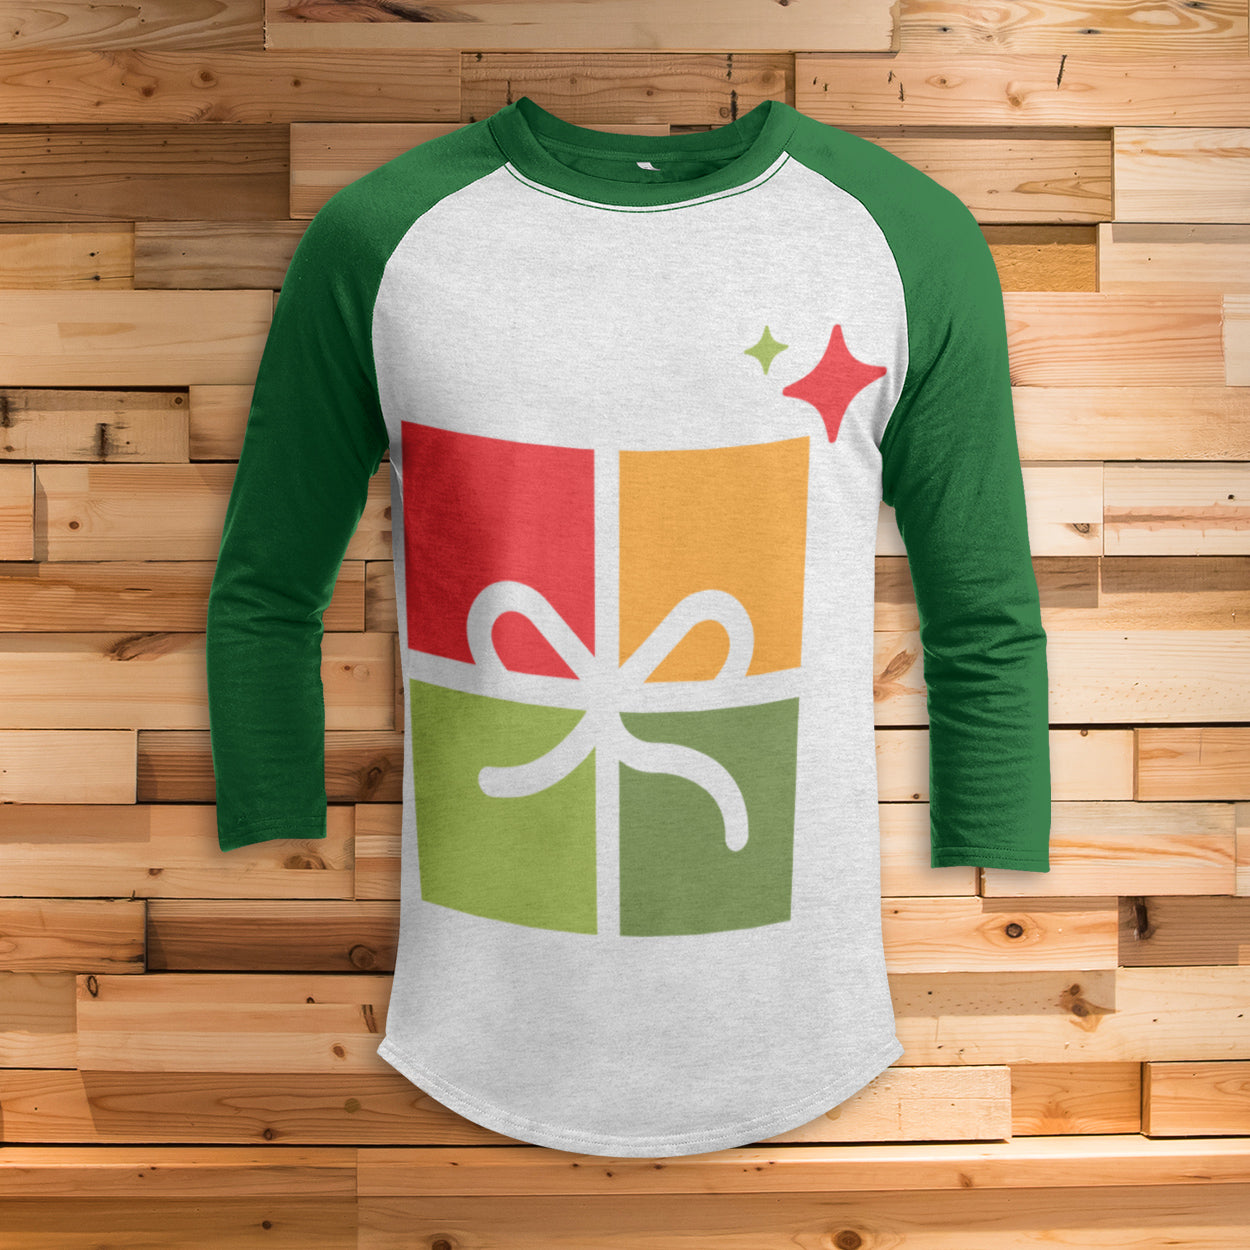 A Simple Present 3/4 Sleeve Raglan - Funny Christmas Shirt